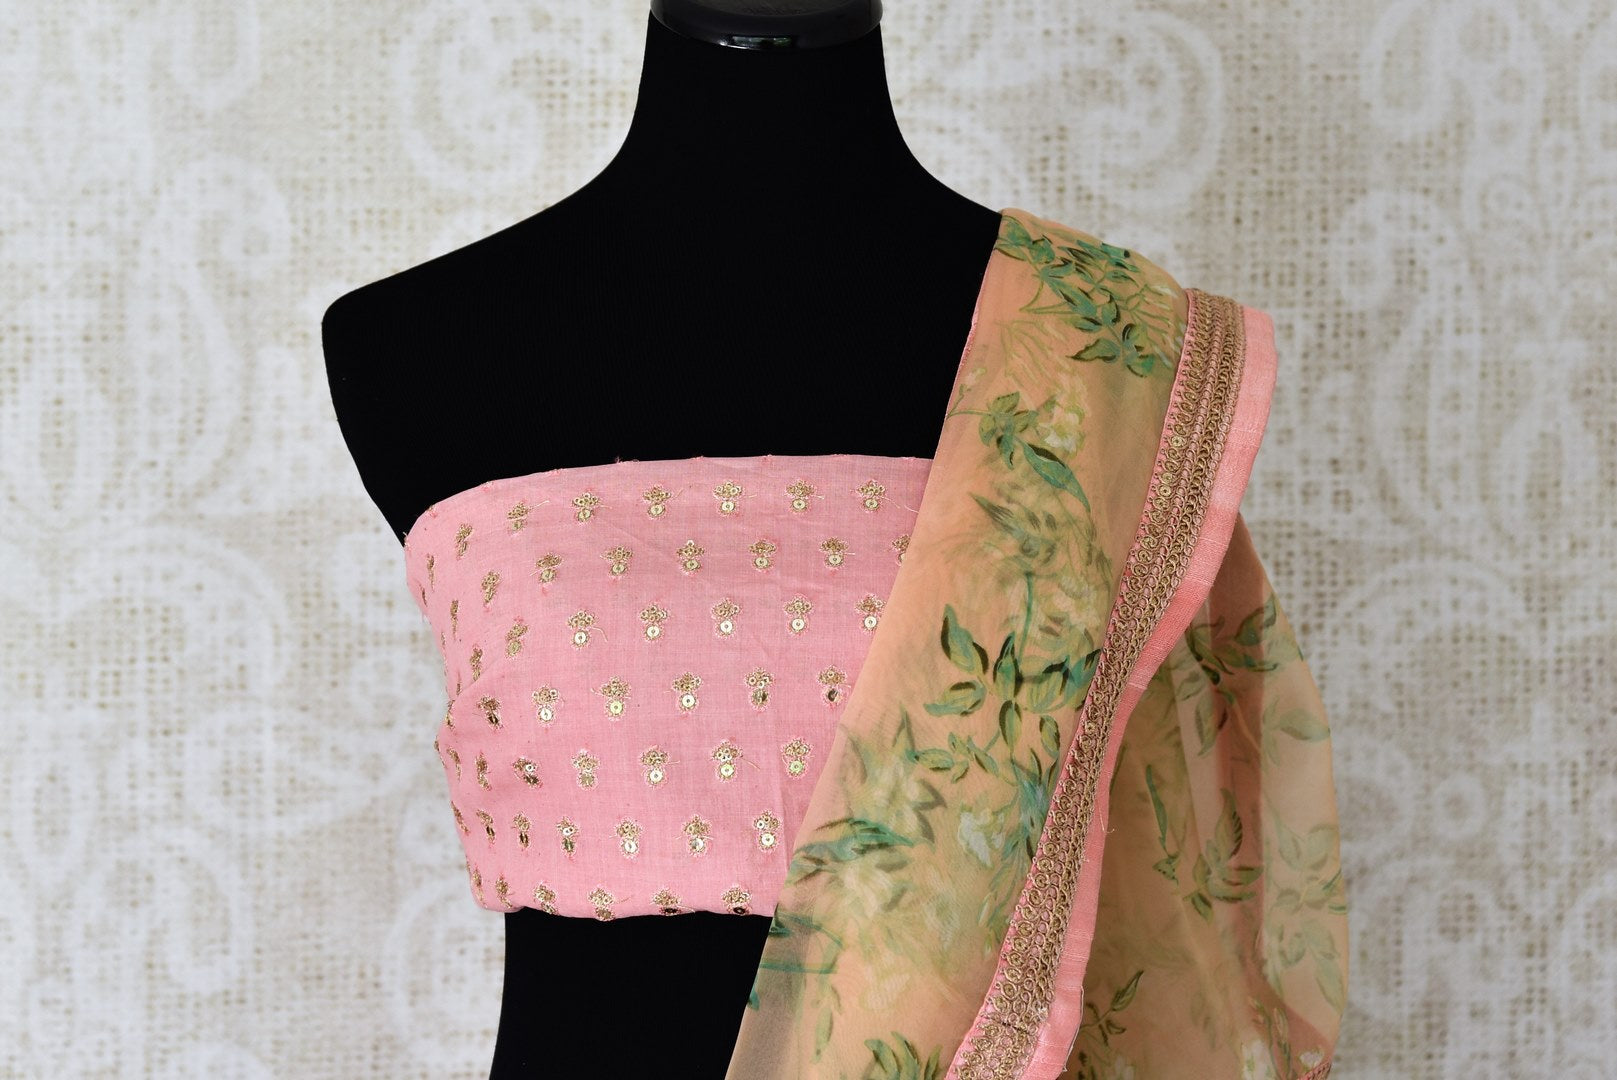 Buy peach floral organza saree online in USA with pink embroidered border. Take your Indian style a notch up with a range of beautiful Indian clothing from Pure Elegance fashion store. We have a range of traditional Indian sarees, designer sarees, handloom sarees in USA online and in our store. Shop now.-blouse pallu